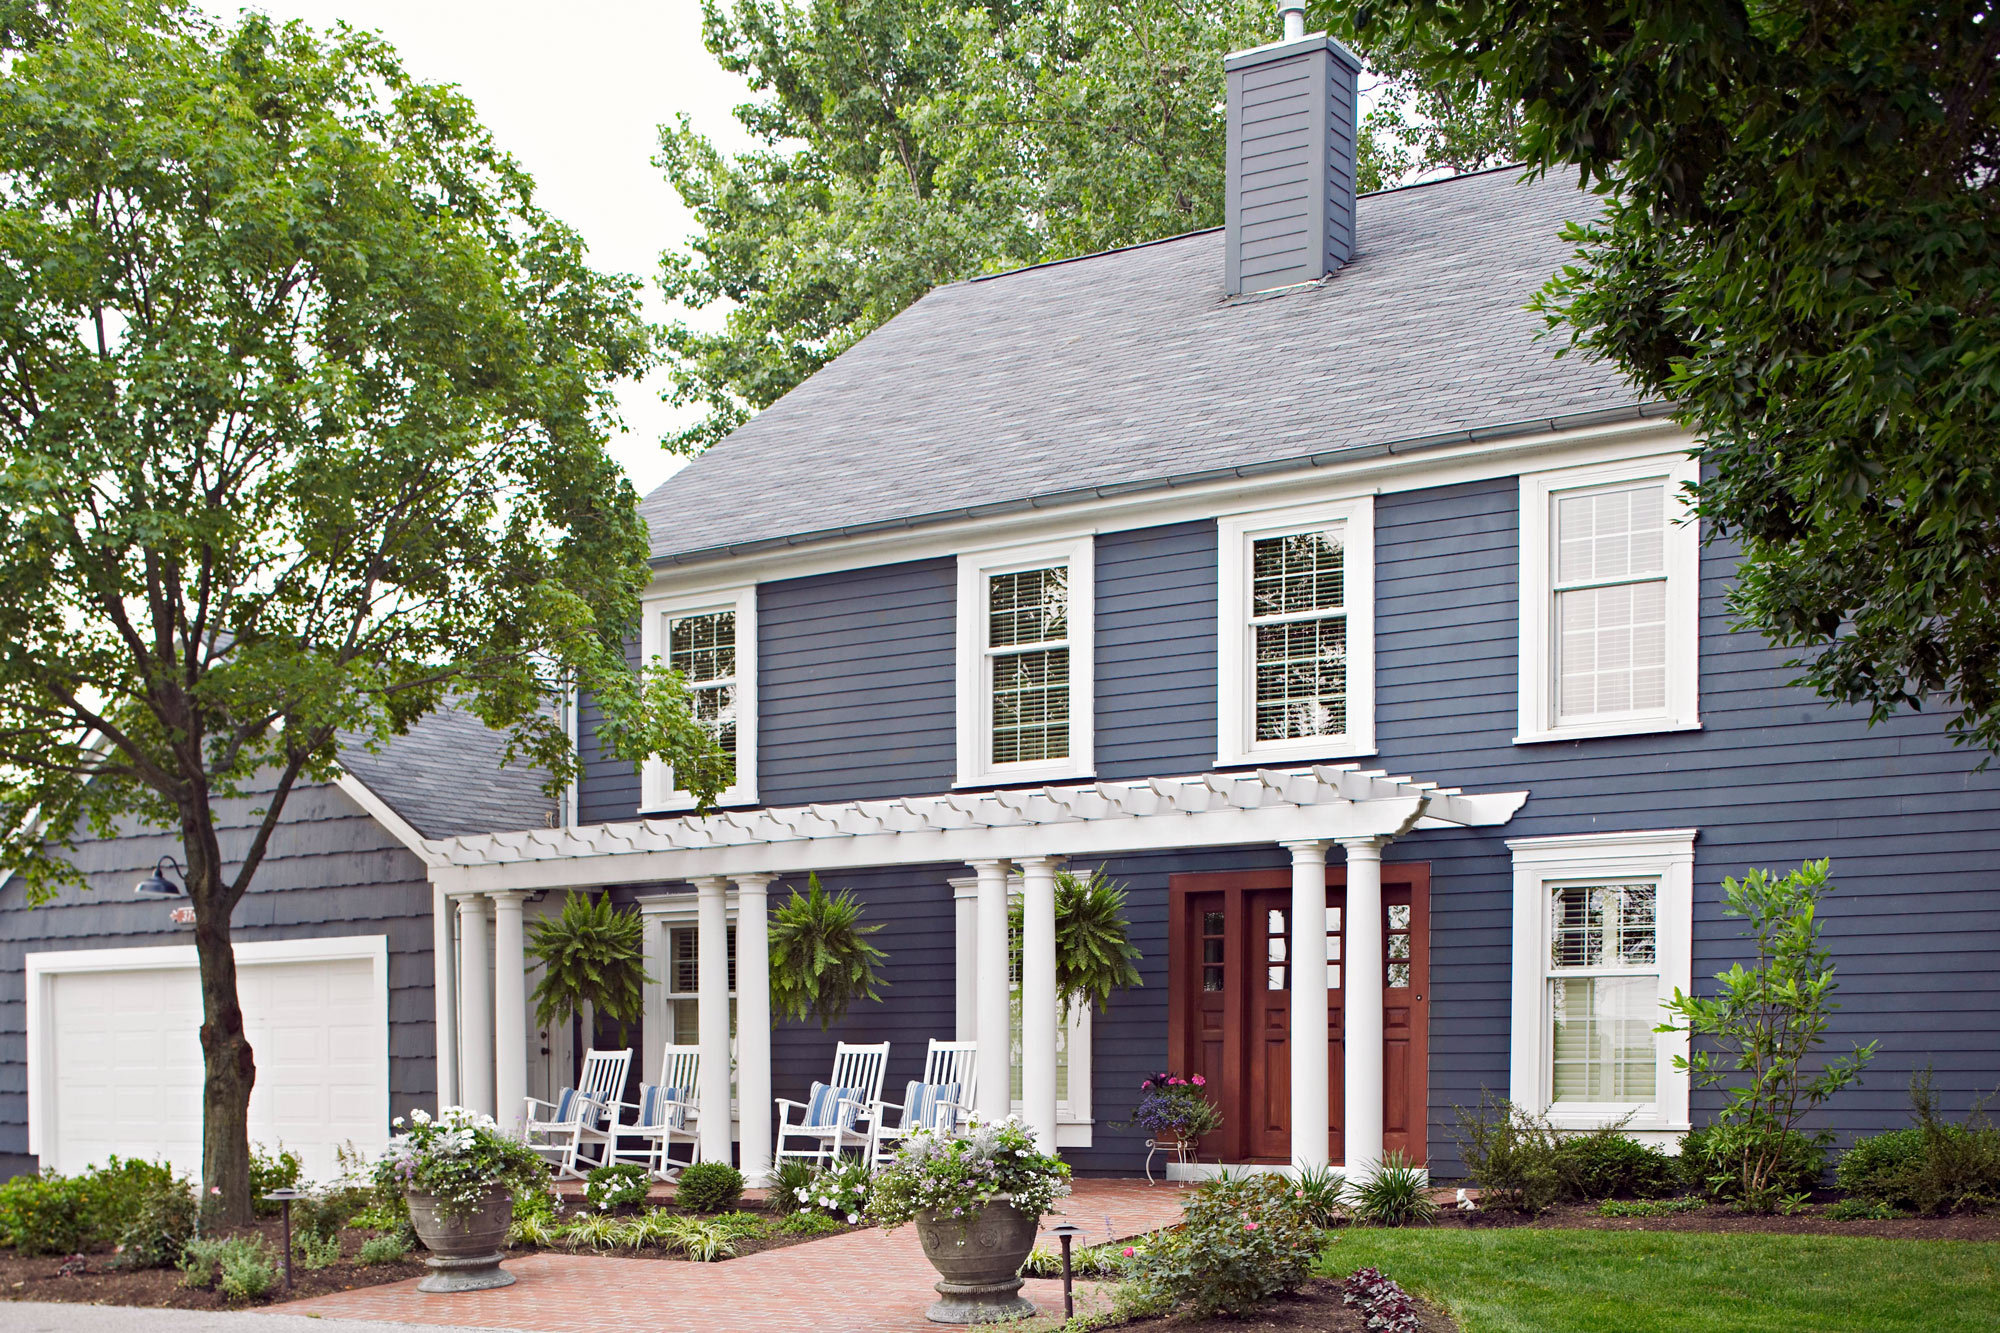 15 Exterior Entryway Designs with Charming Curb Appeal  Better